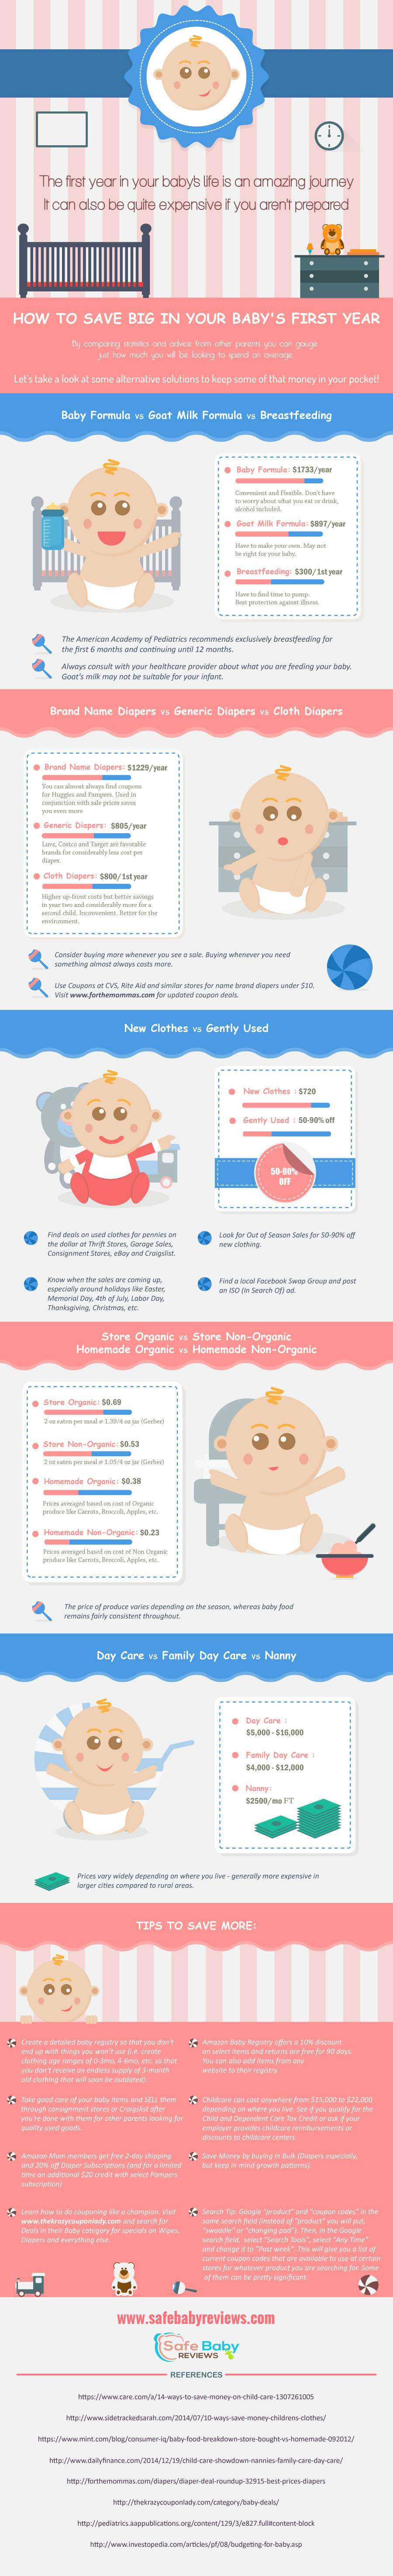 Infographic-How-To-Save-Baby